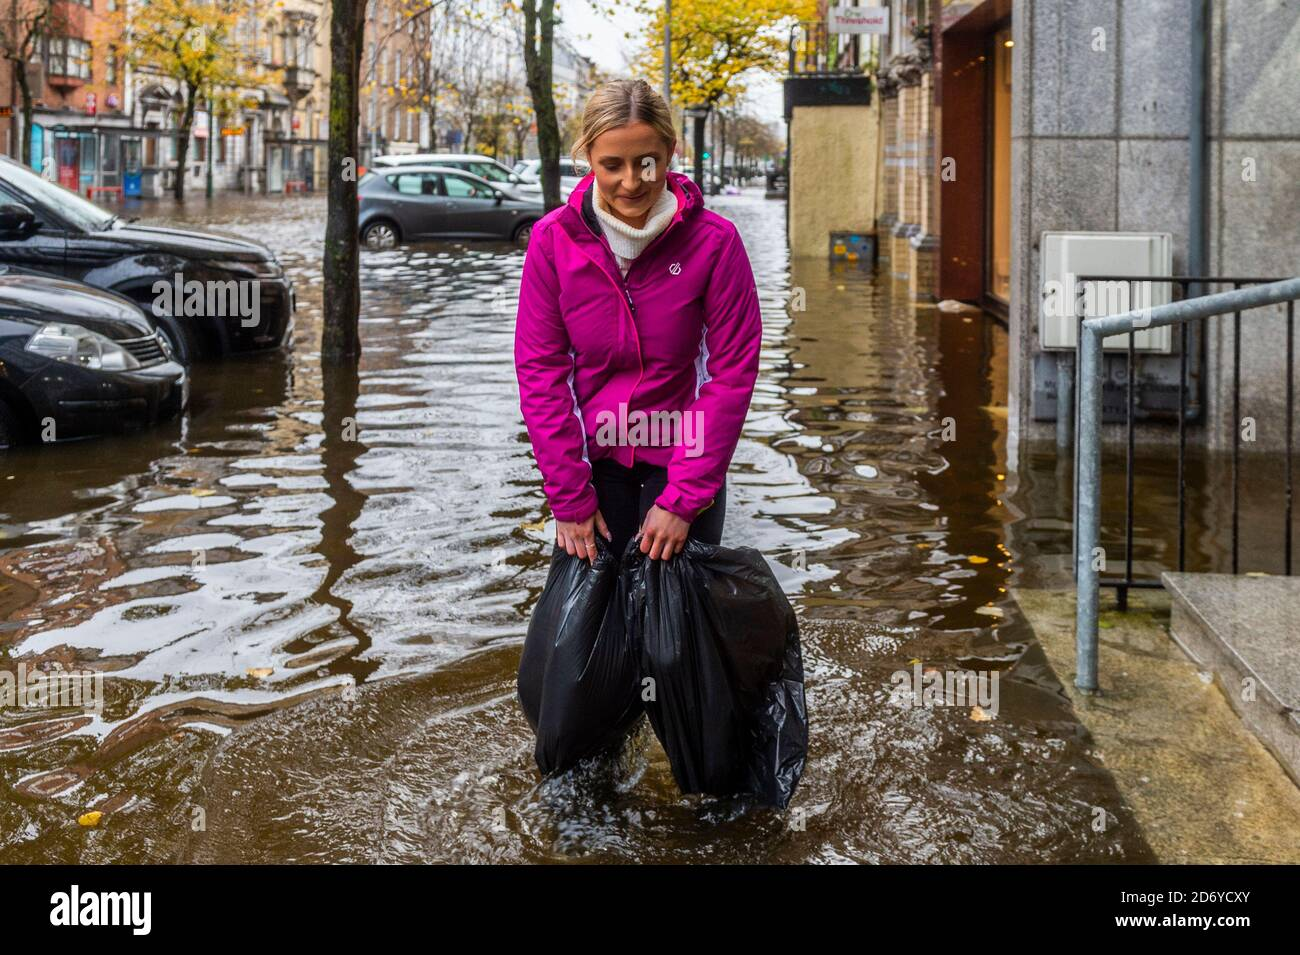 cork-ireland-20th-oct-2020-cork-city-flooded-this-morning-with-south-mall-and-the-low-lying-quays-bearing-the-brunt-of-the-flood-water-this-lady-used-bin-bags-to-protect-her-shoes-credit-ag-newsalamy-live-news-2D6YCXY.jpg